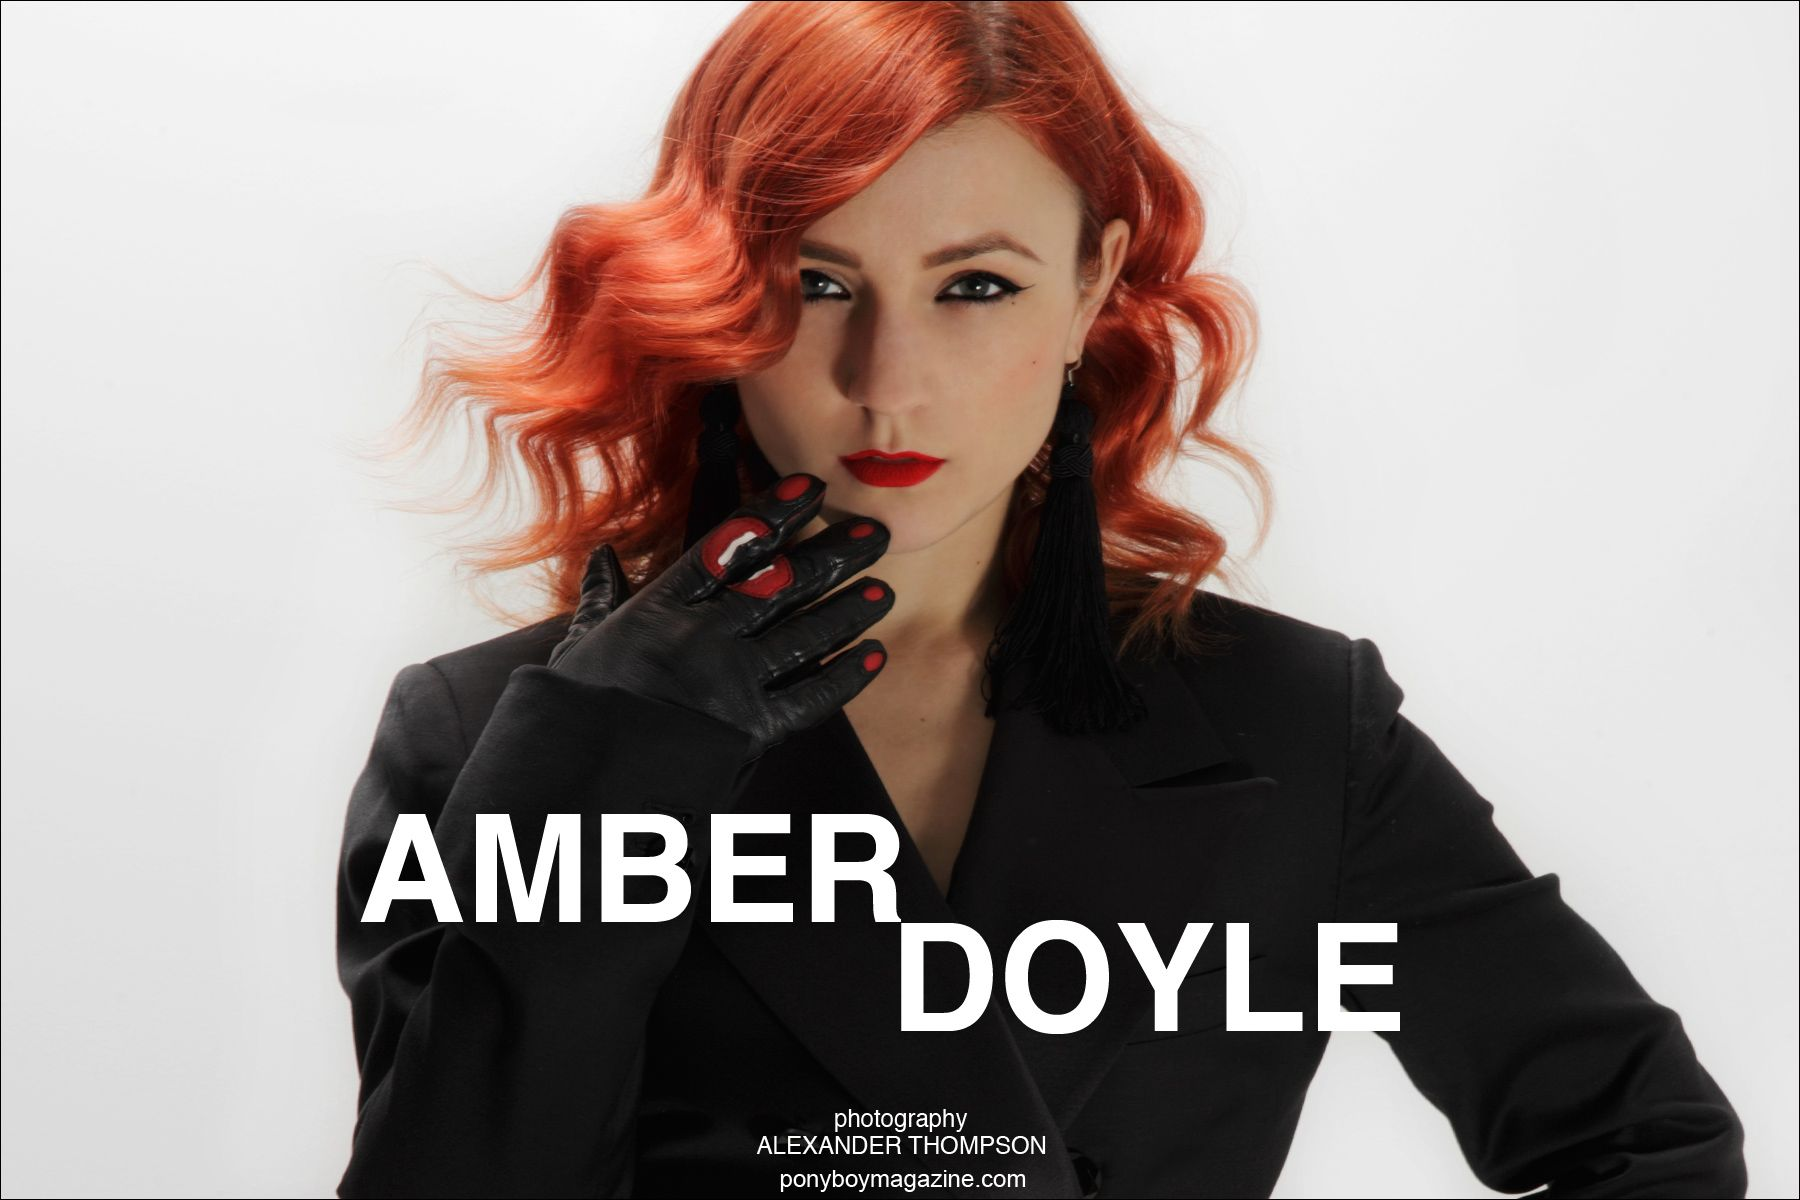 Amber Doyle opening spread for Ponyboy Magazine, photographed by Alexander Thompson in New York City.